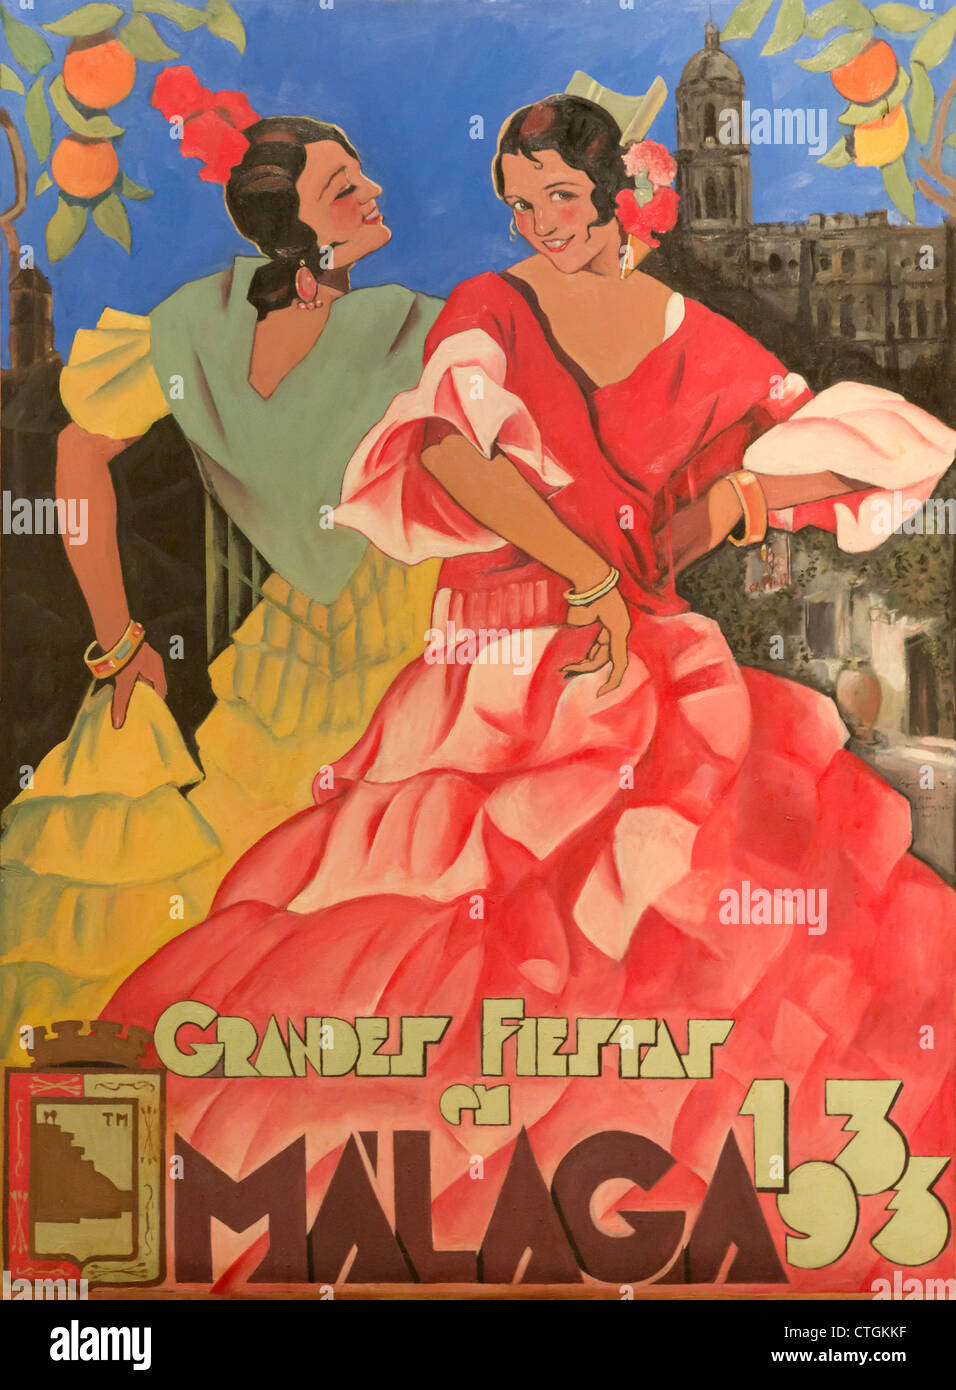 Poster advertising Grandes Fiestas de Malaga 1933. - Stock Image